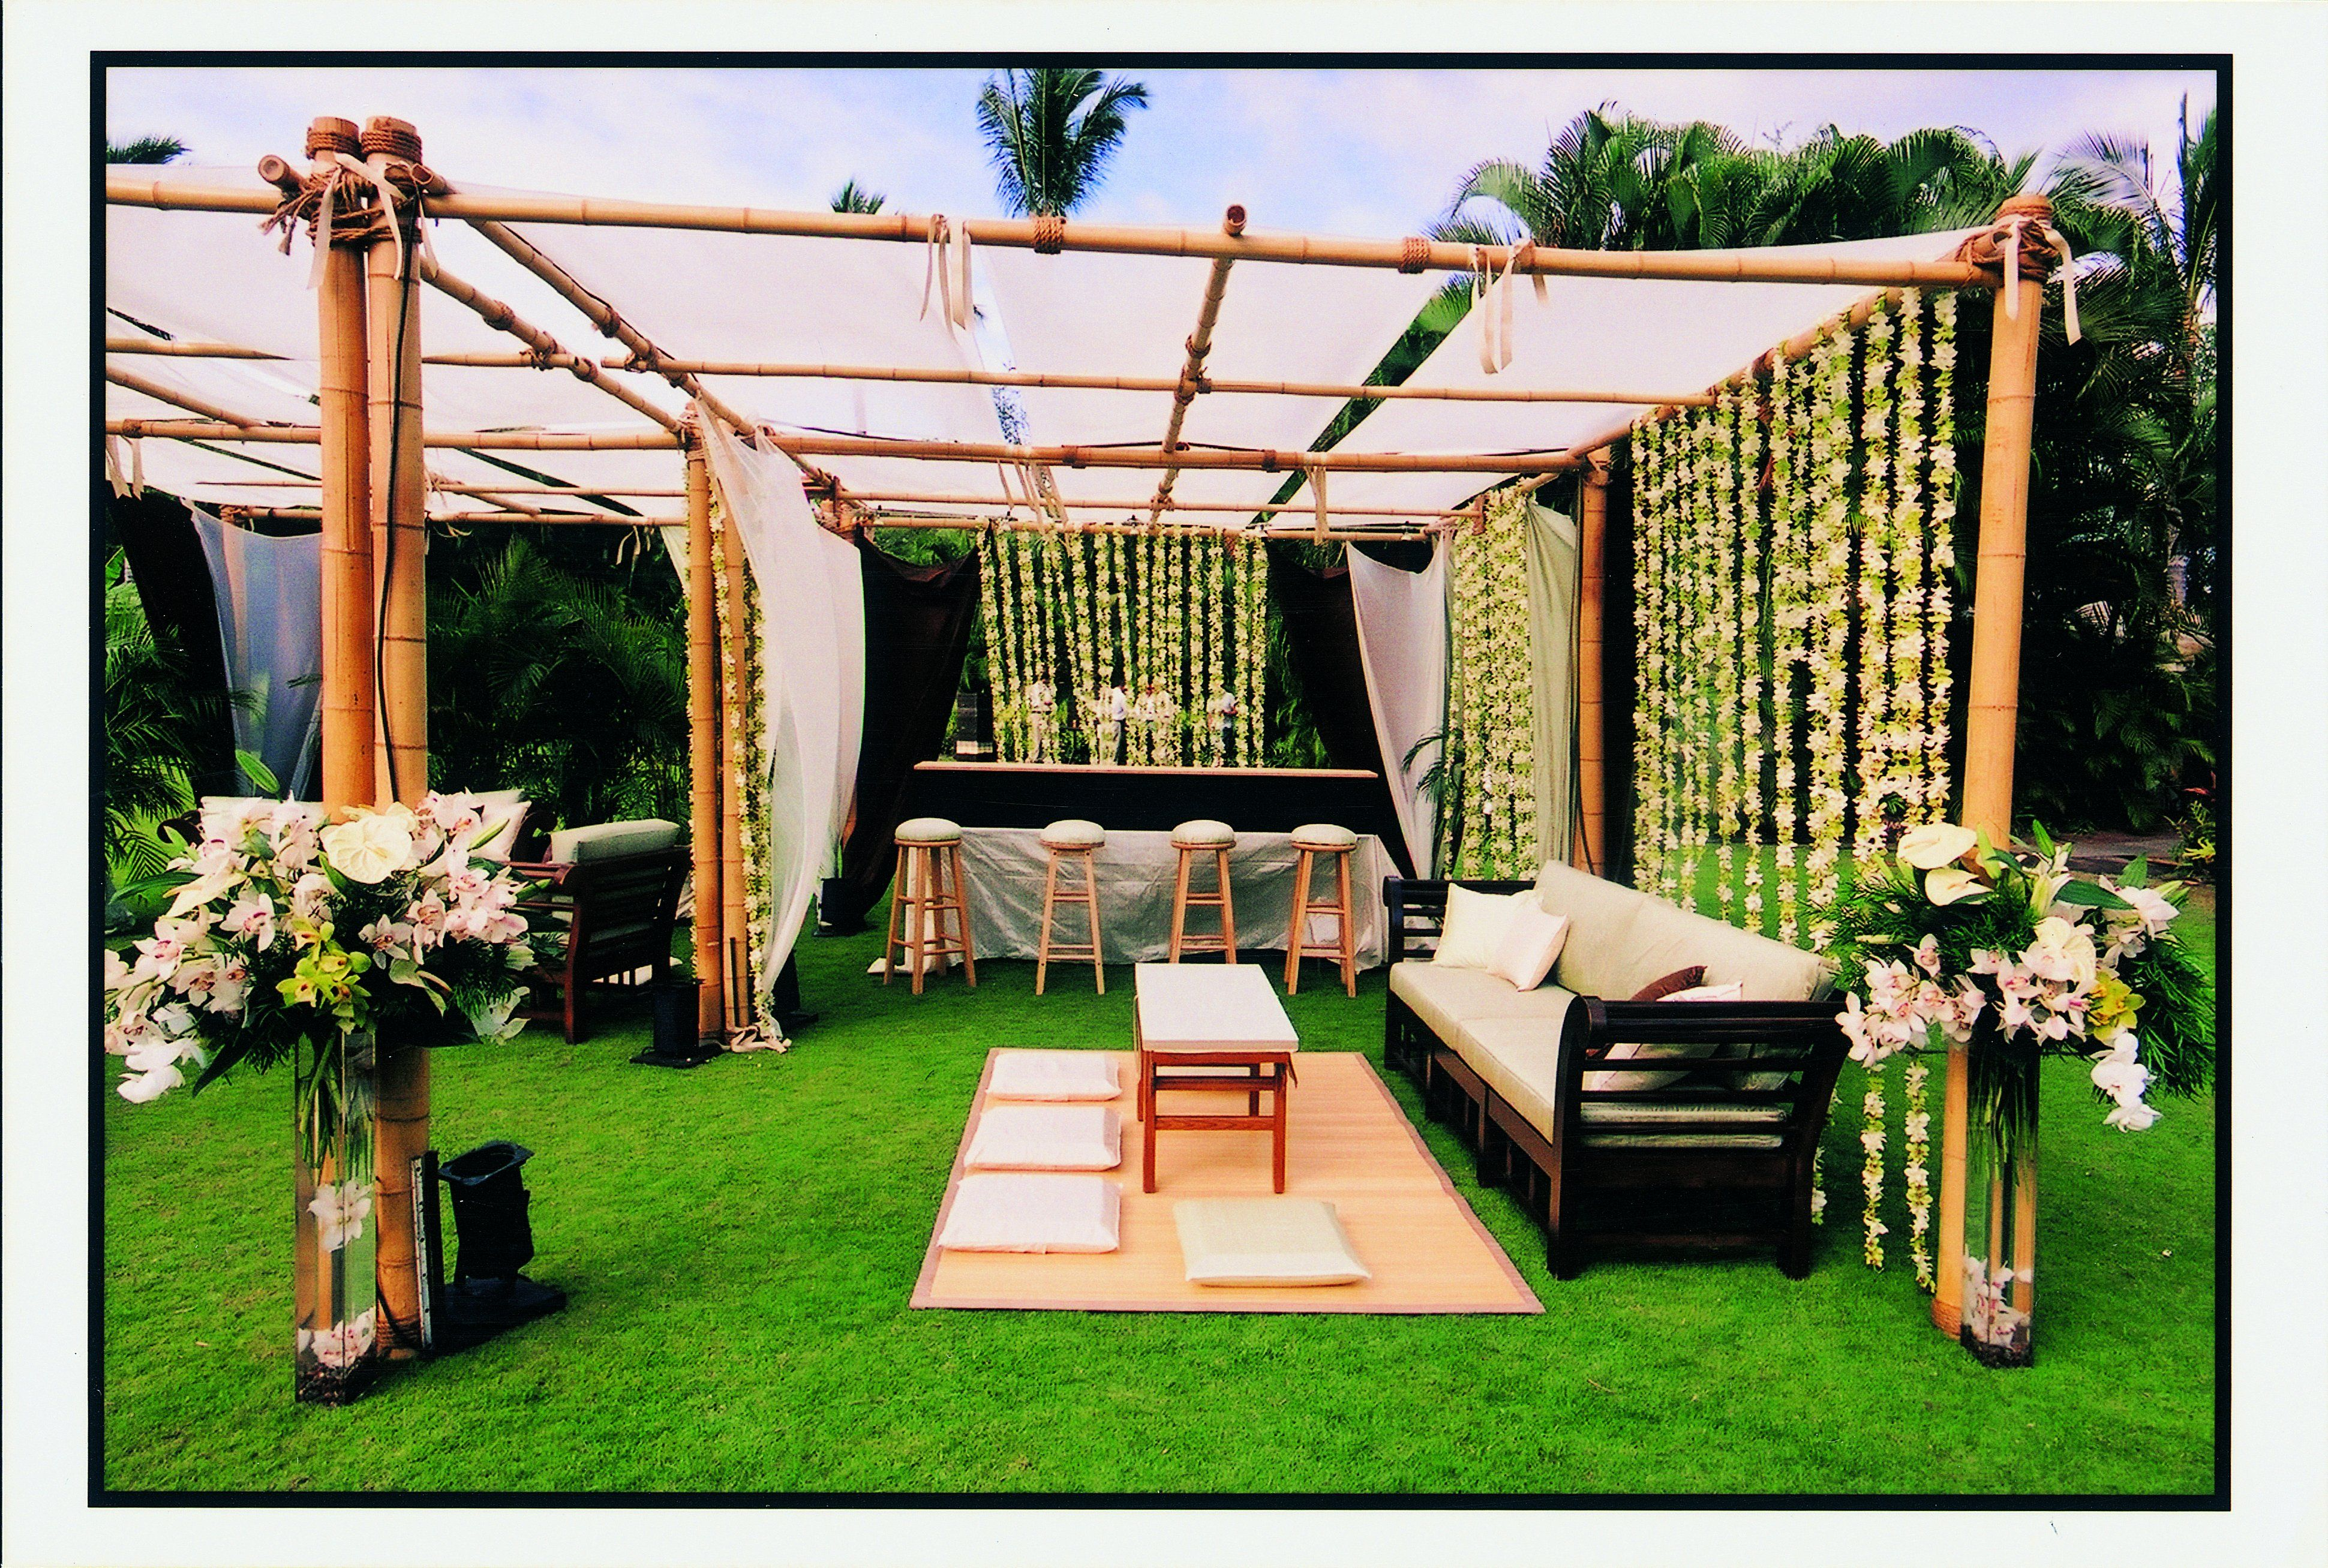 tent wedding decoration pictures they say the most tasteful